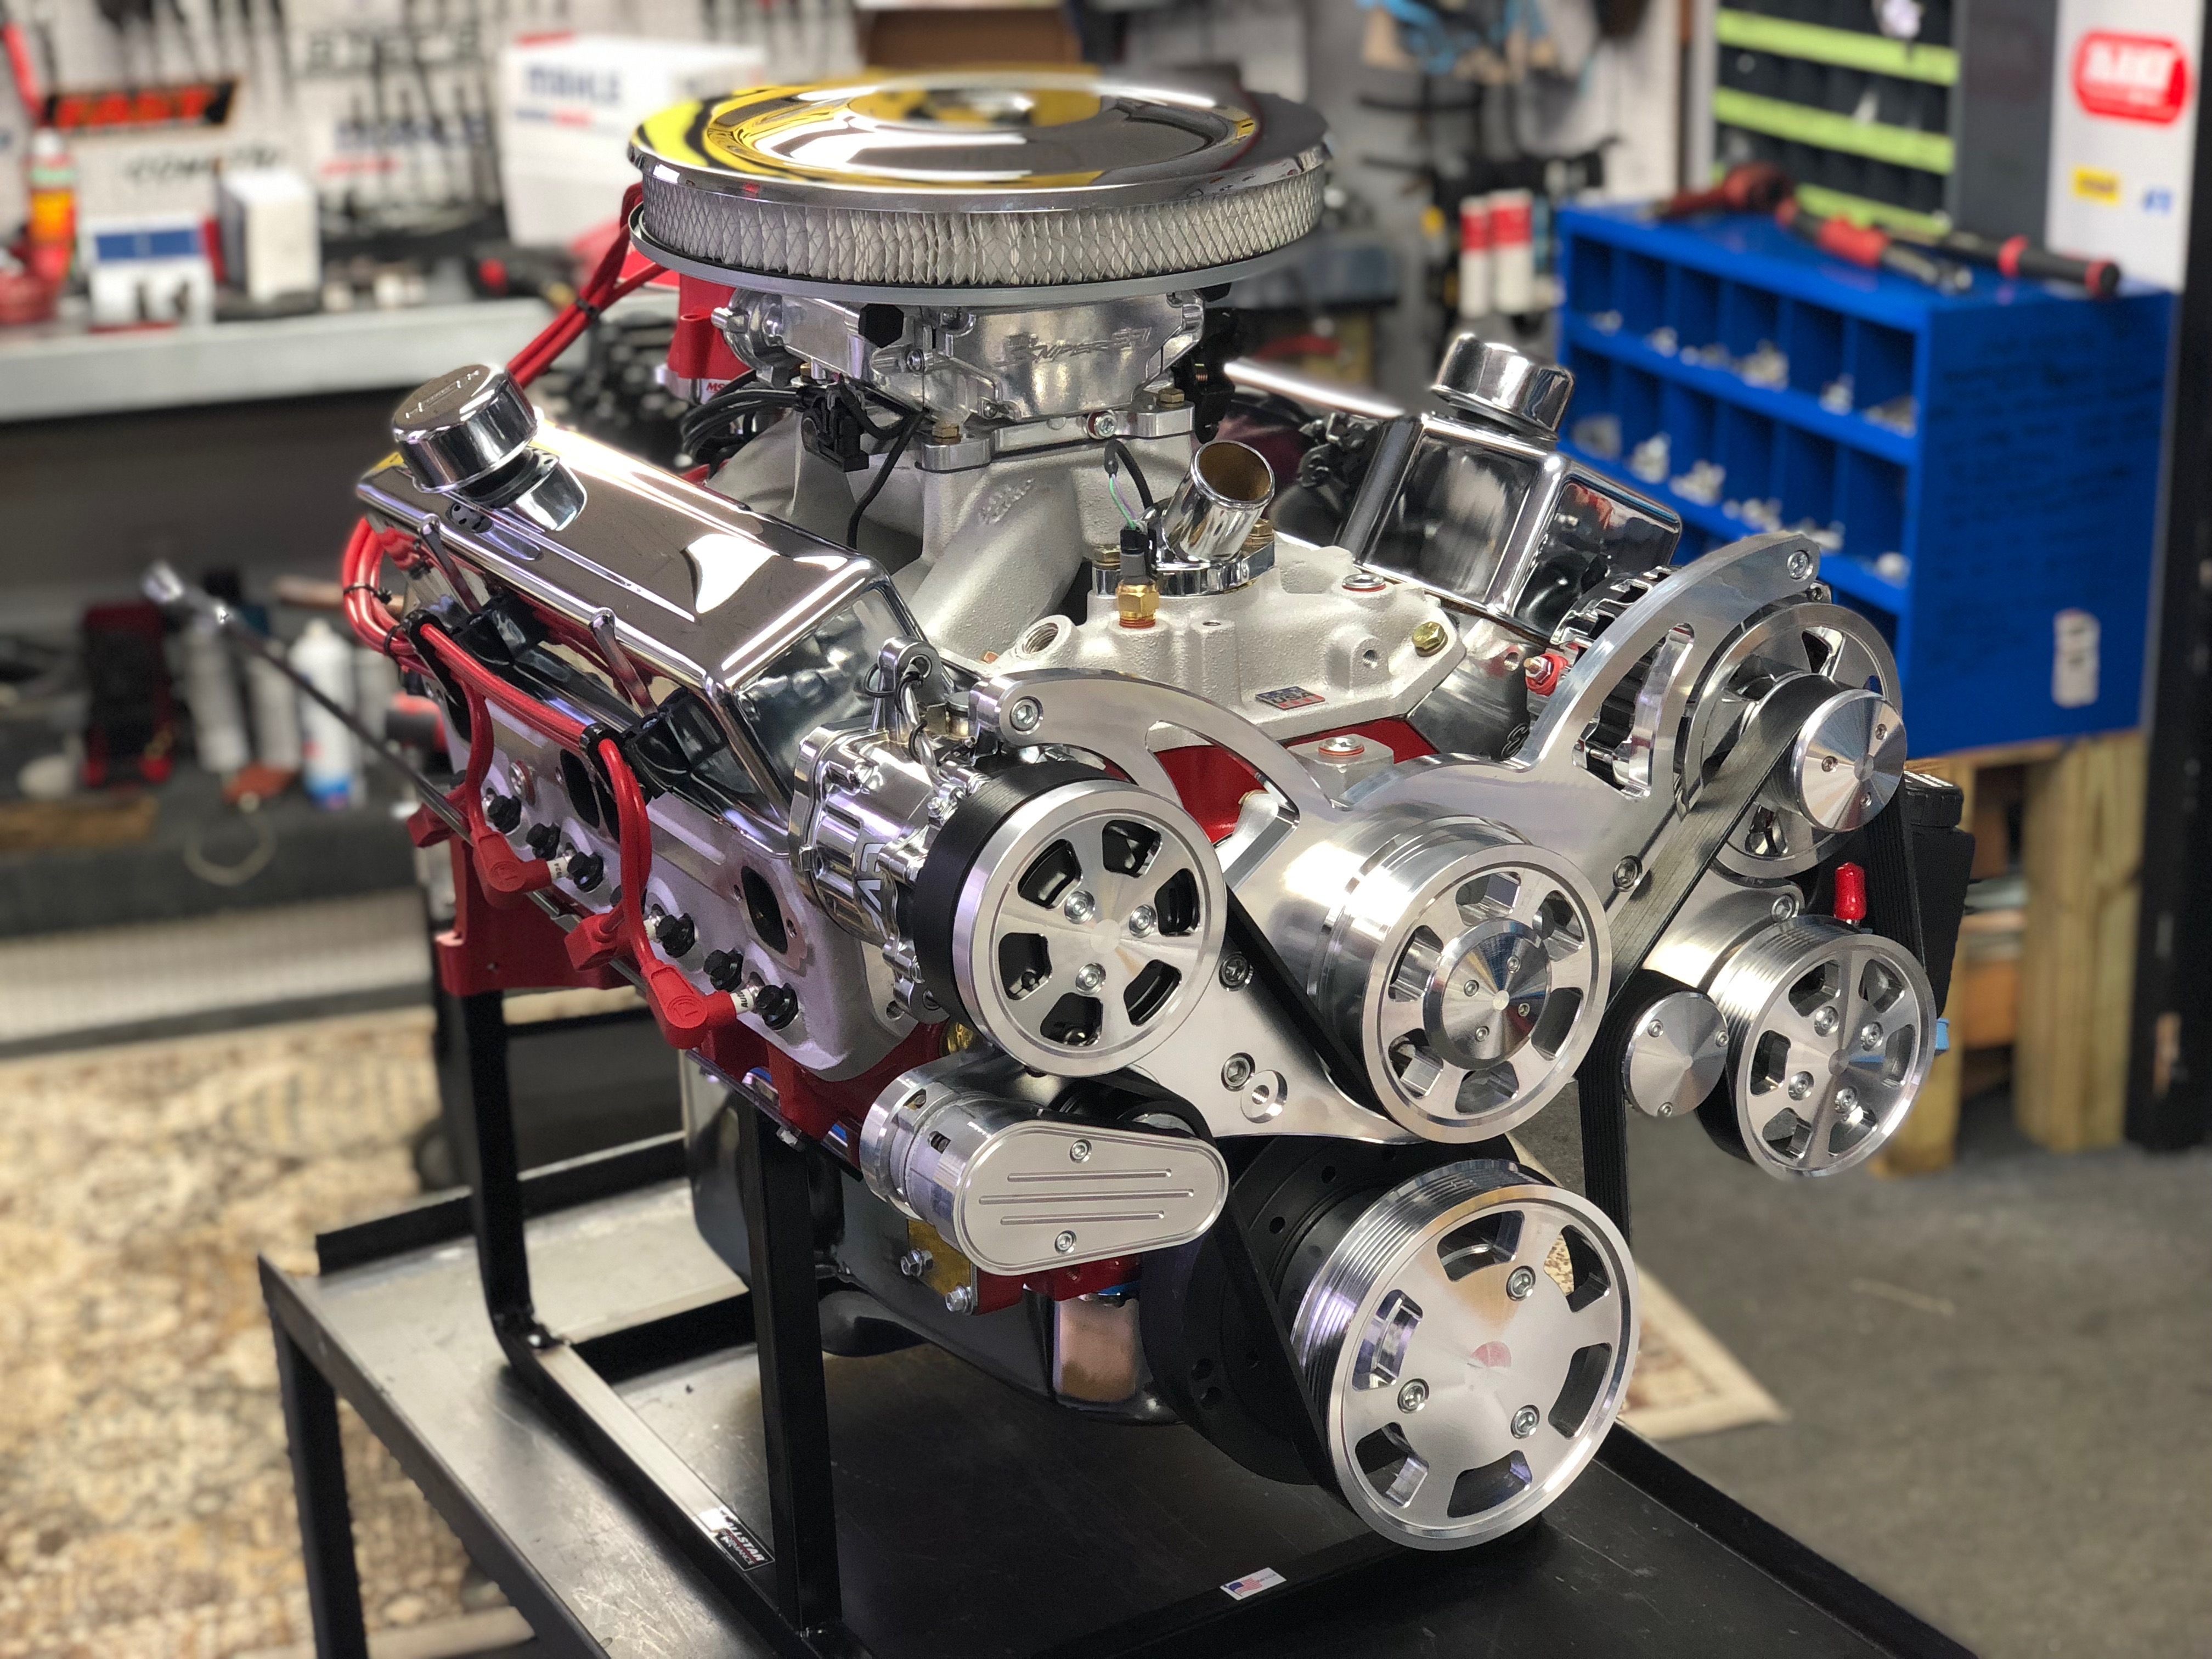 383 Chevy Stroker Crate Engine 450HP - For Your Hot Rod